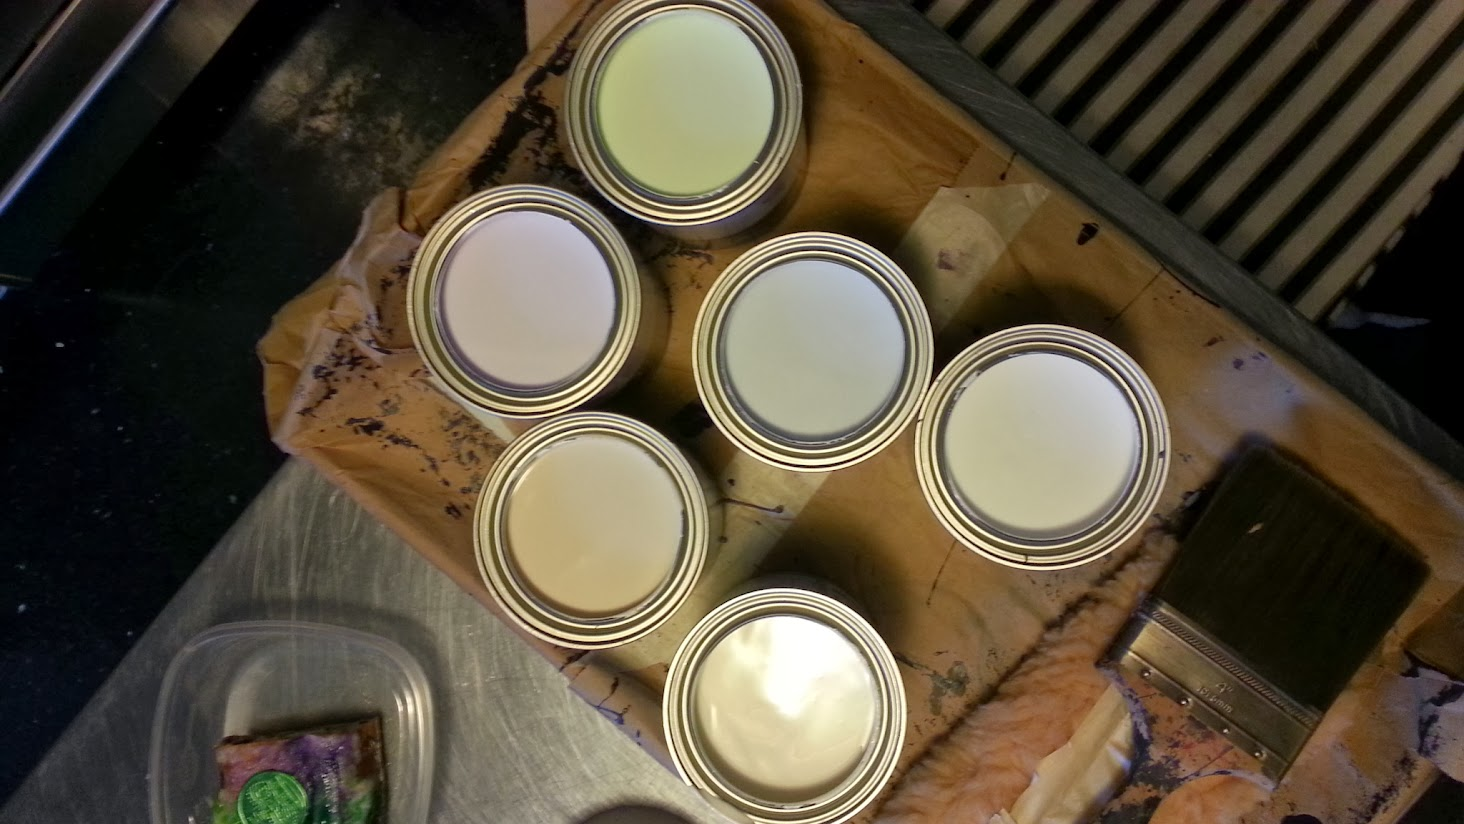 Six quarts of wall paint, lids off, showing six near-white pastel colors